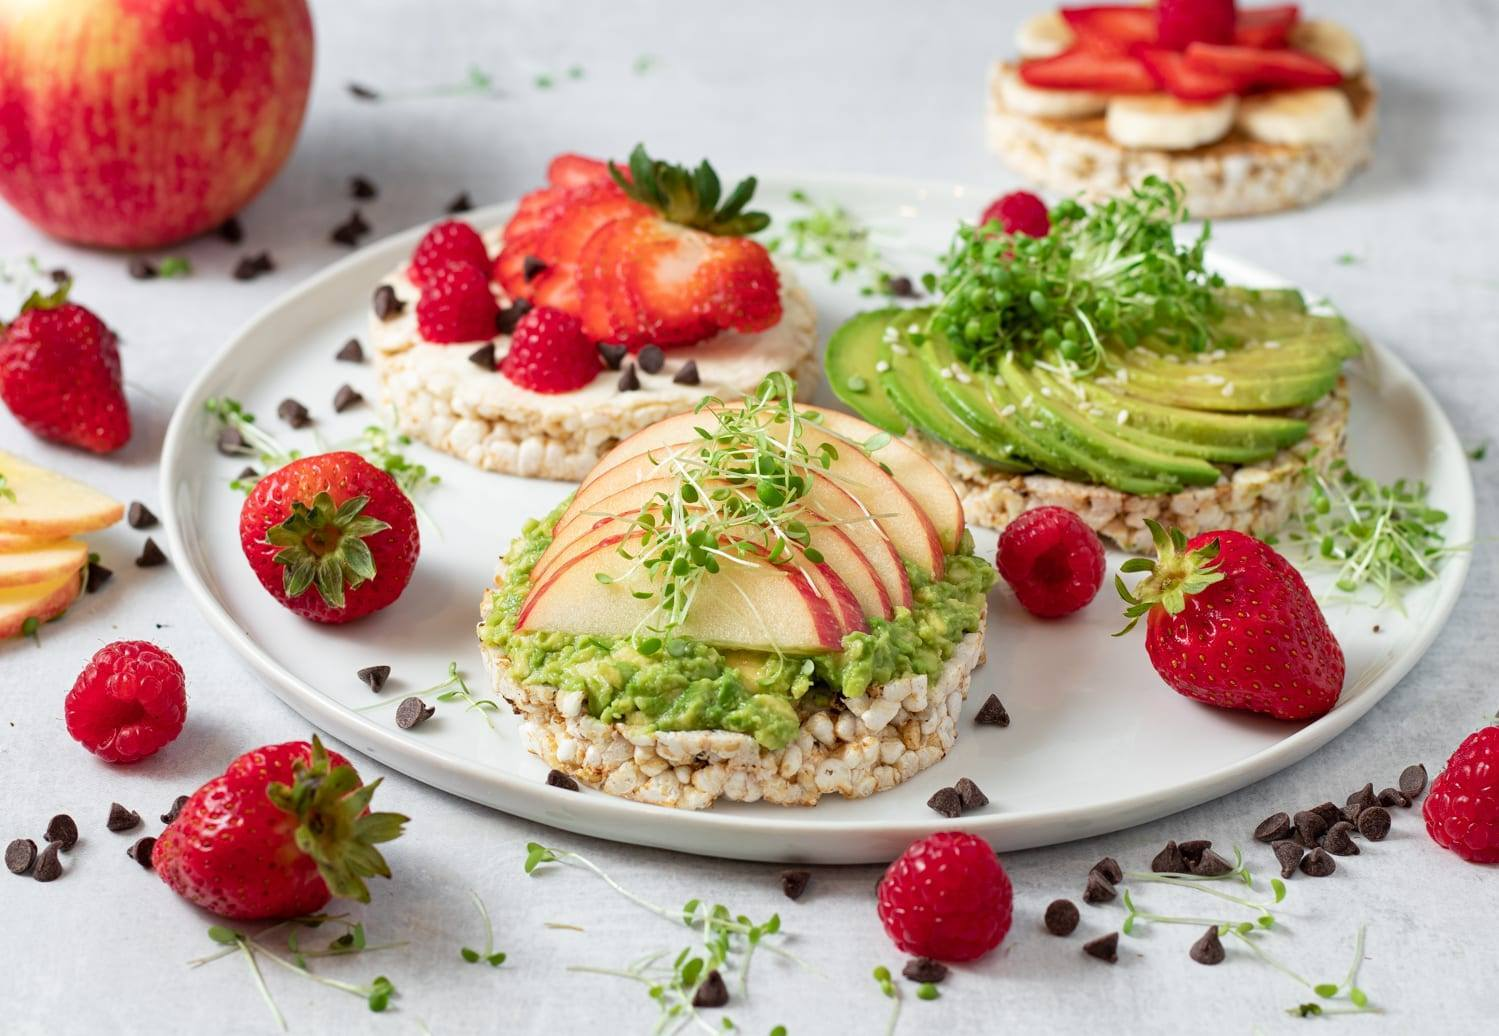 Healthy Rice Cake Toppings, Use your Imagination!